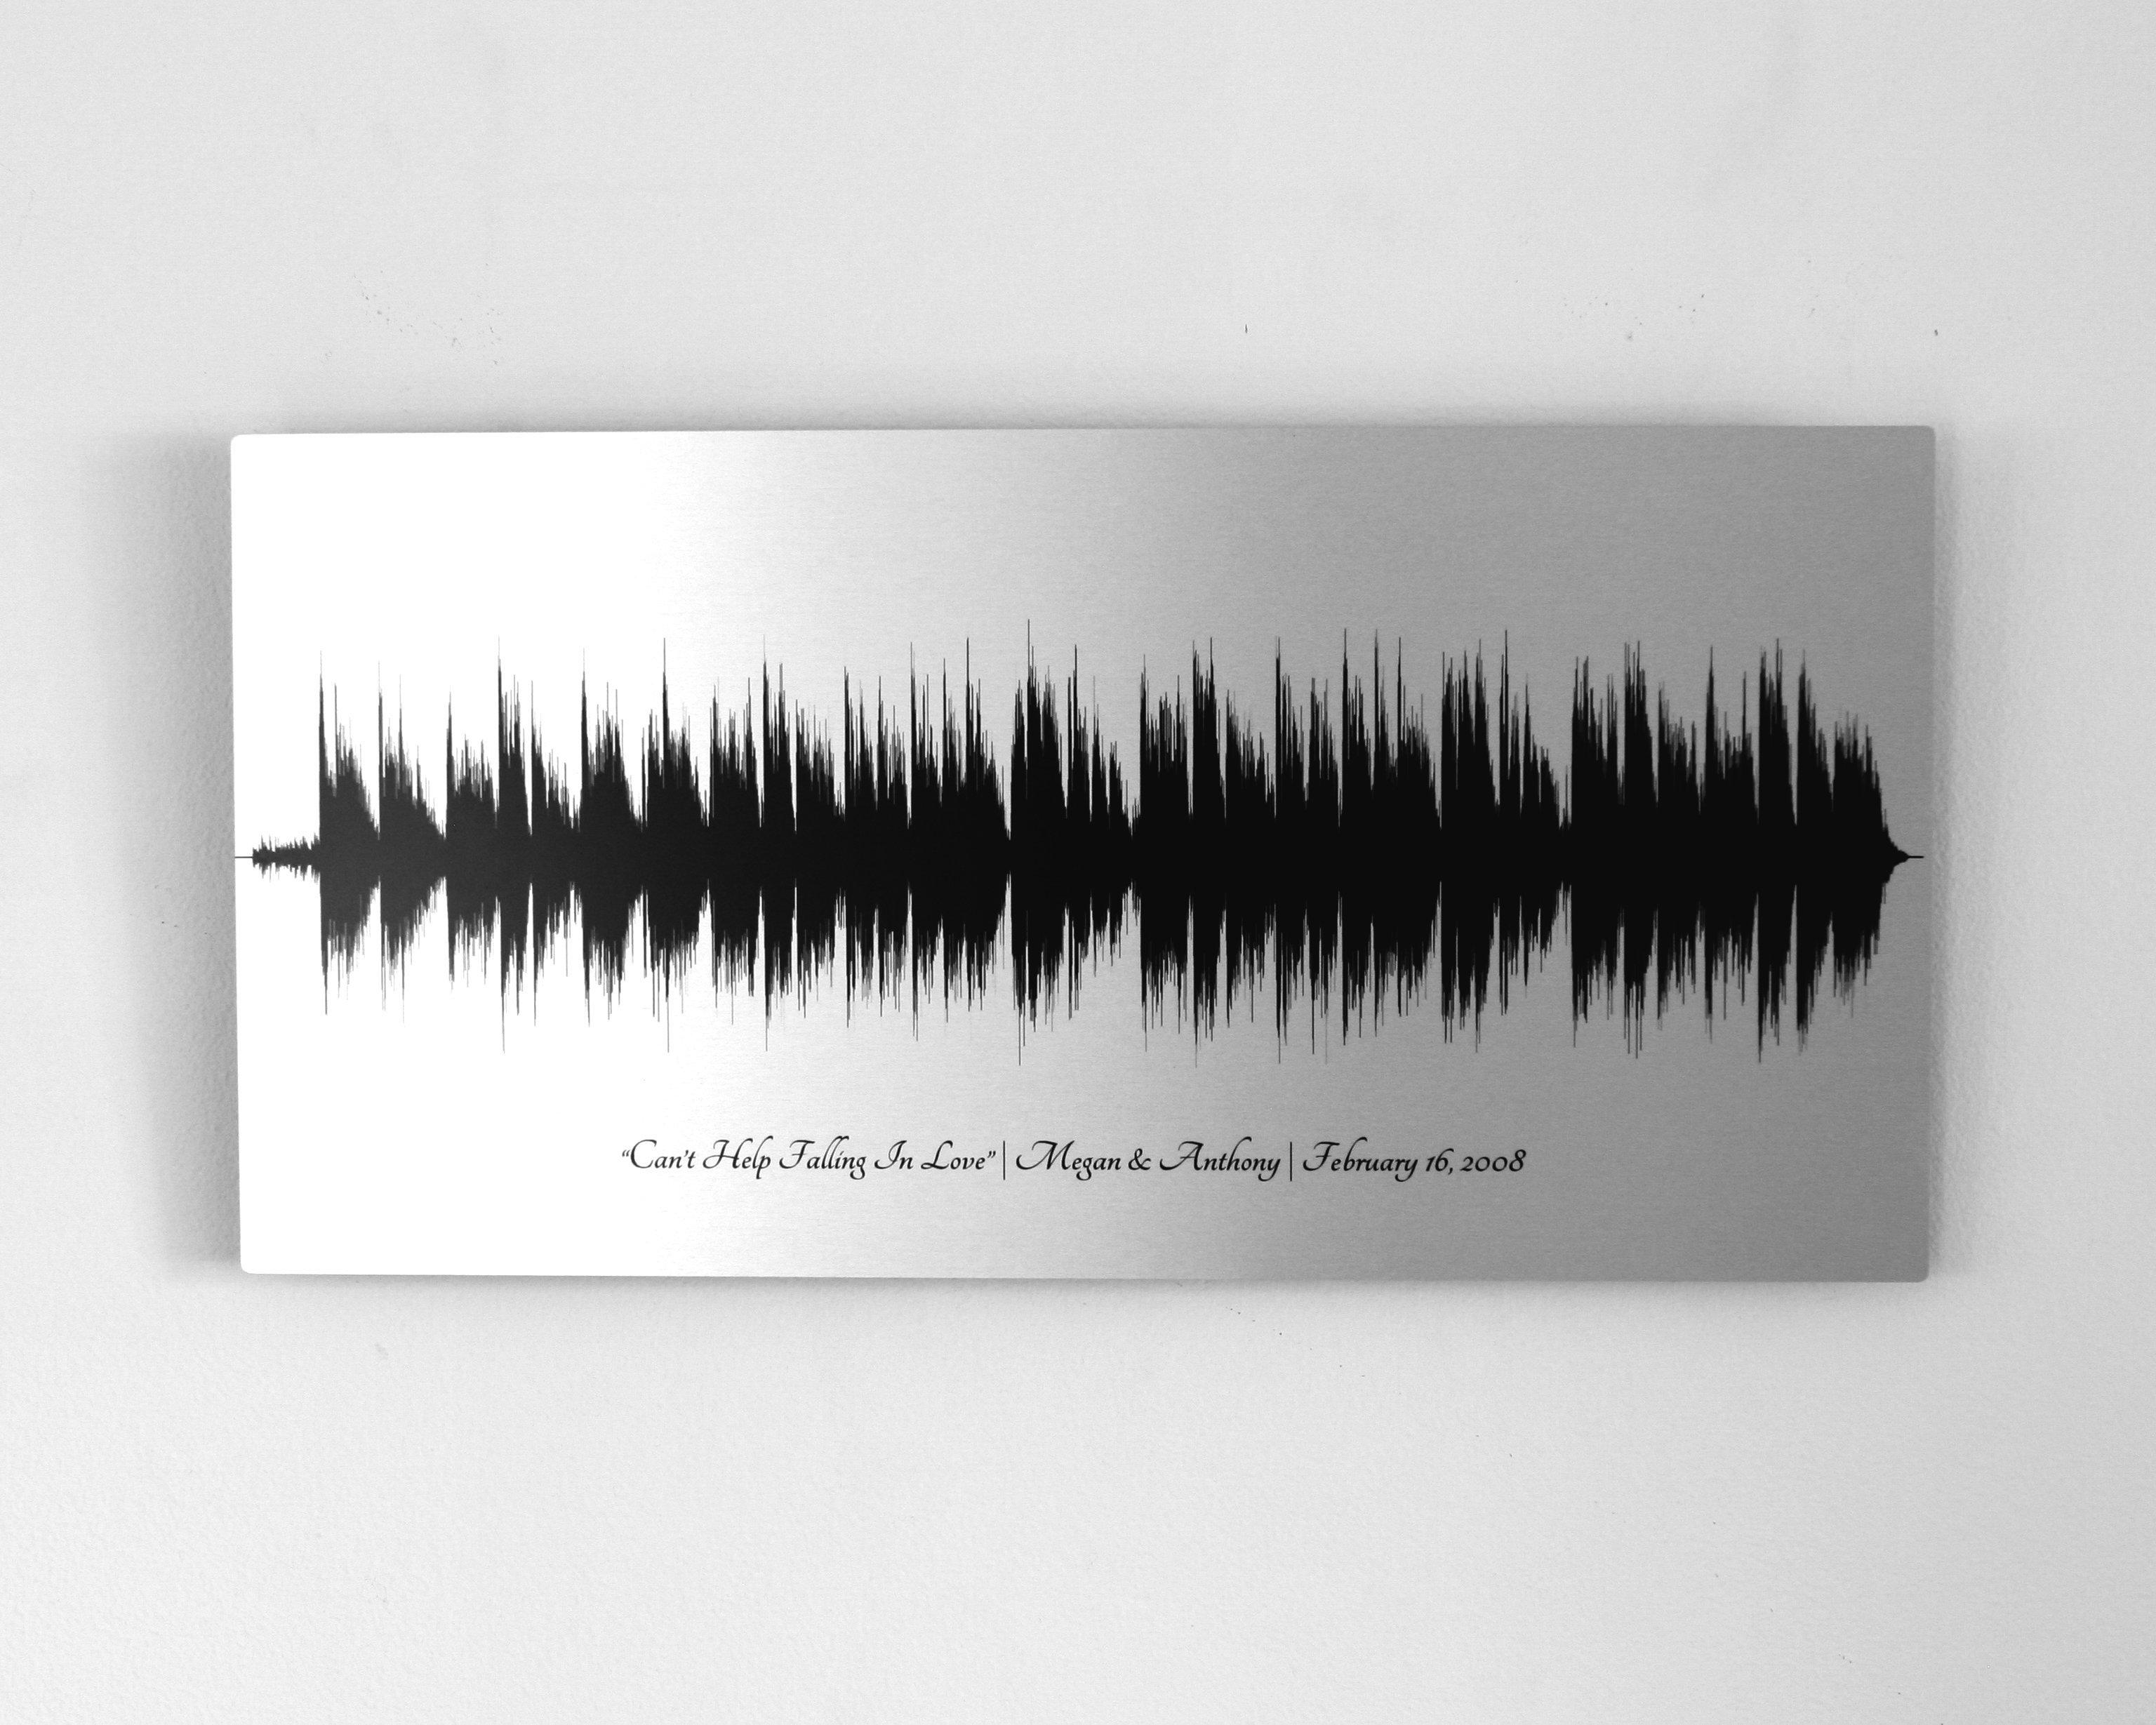 What Is 10 Year Wedding Anniversary Gift: 10 Year Anniversary Gifts, Tin Aluminum Metal Print, Sound